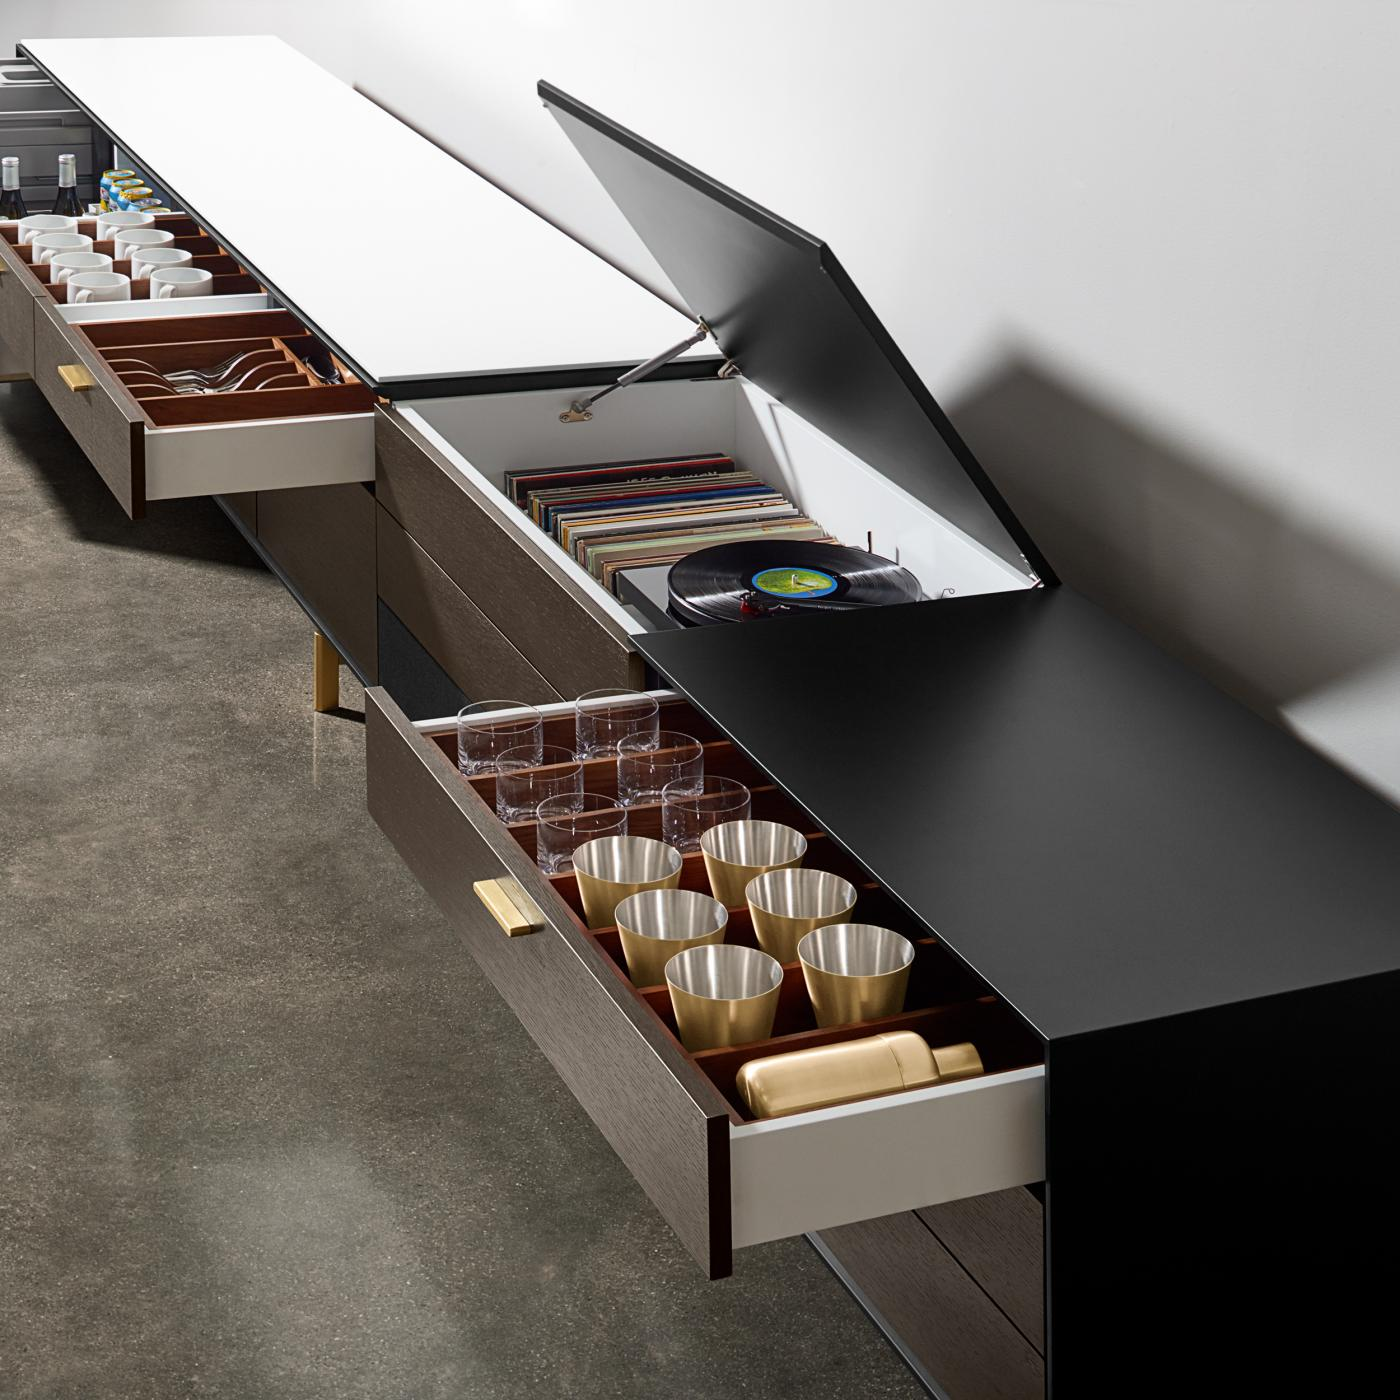 Glassware, refrigeration, entertainment, food service and cleanup are some of the innovative elements of a Halo sideboard.